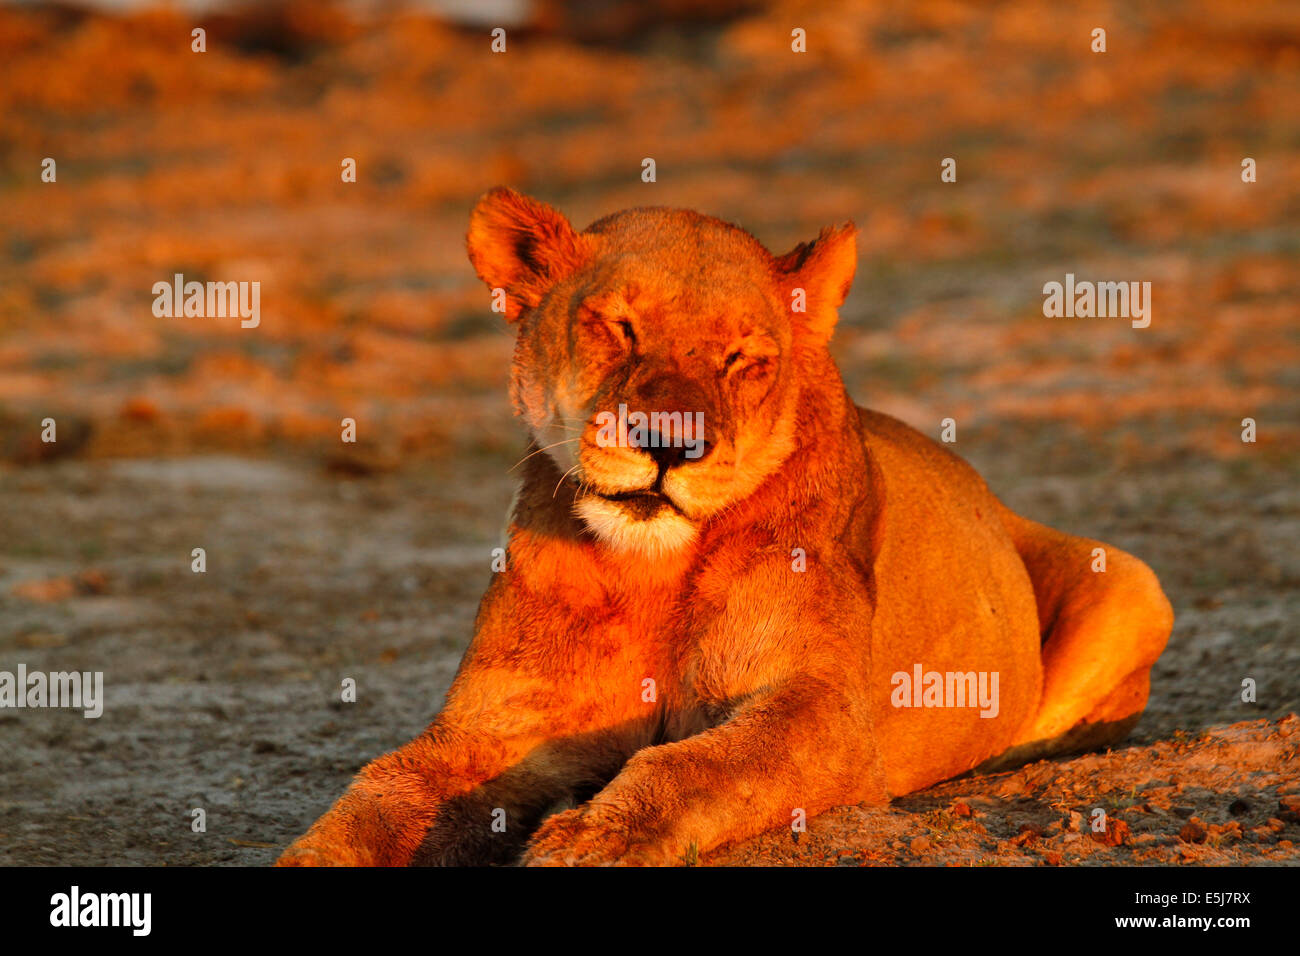 A pride of lions in Botswana, South Africa, snoozing lioness, big cat one of Africa's big five Stock Photo